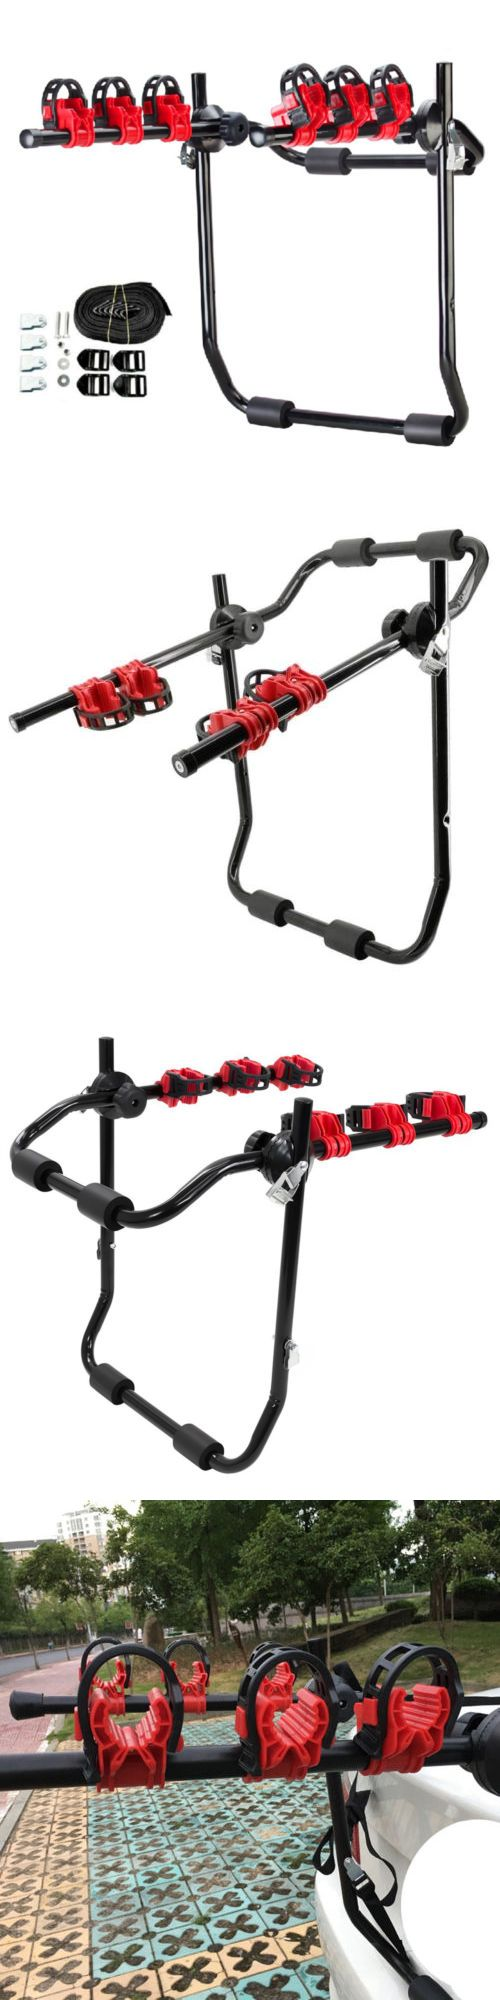 Car and Truck Racks 177849: Trunk-Mount 3-Bike Carrier Hatchback Suv Car Sport Bicycle Truck Rack Portable -> BUY IT NOW ONLY: $32.59 on eBay!